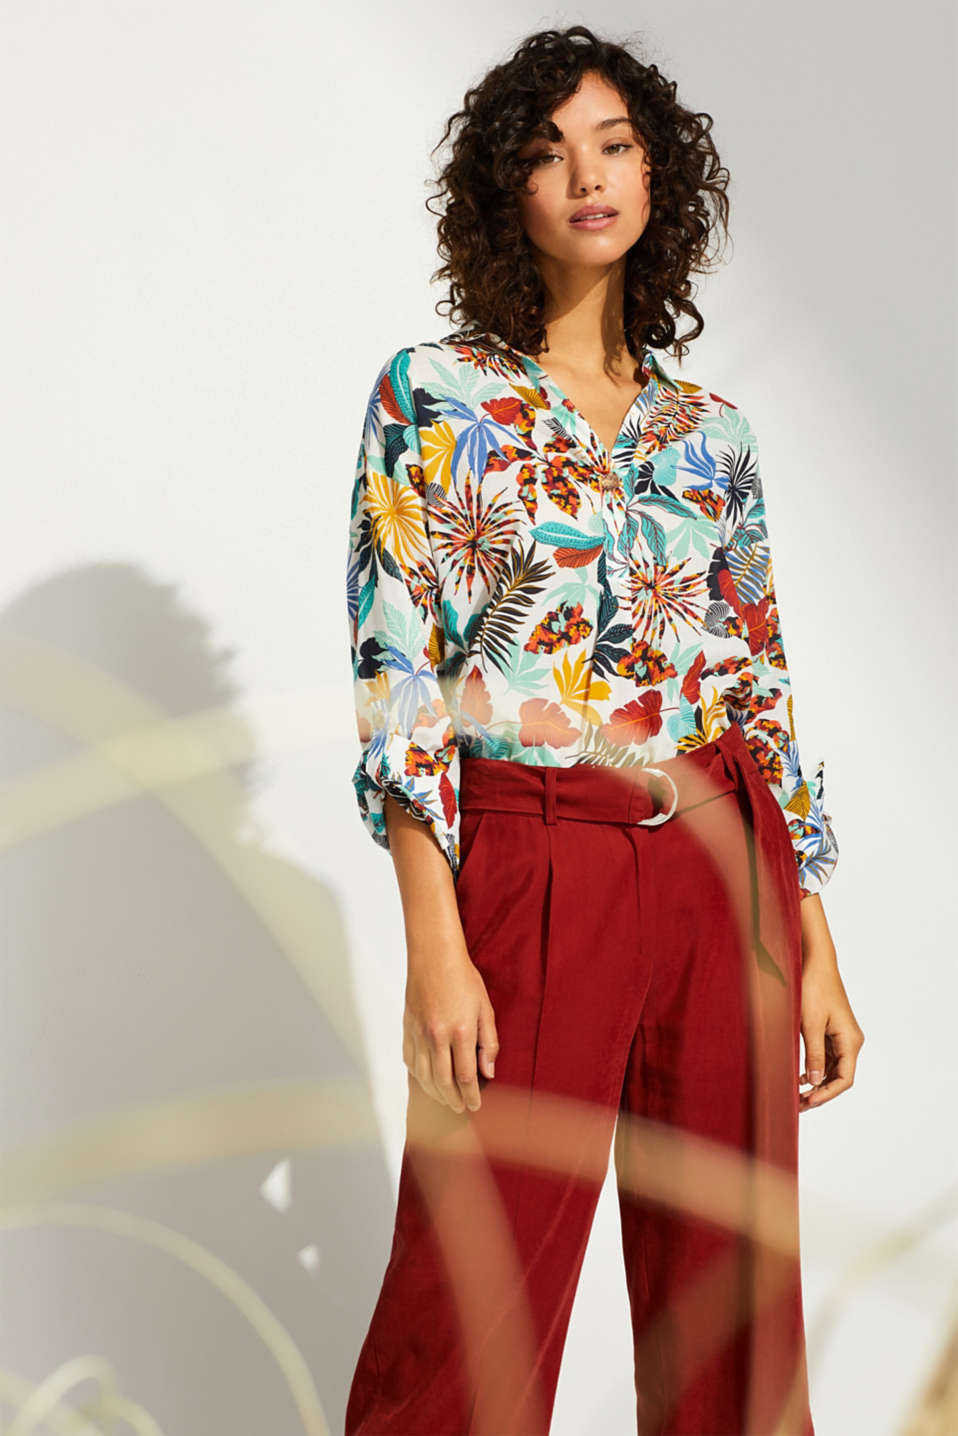 Esprit - Printed blouse with turn-up sleeves, 100% cotton